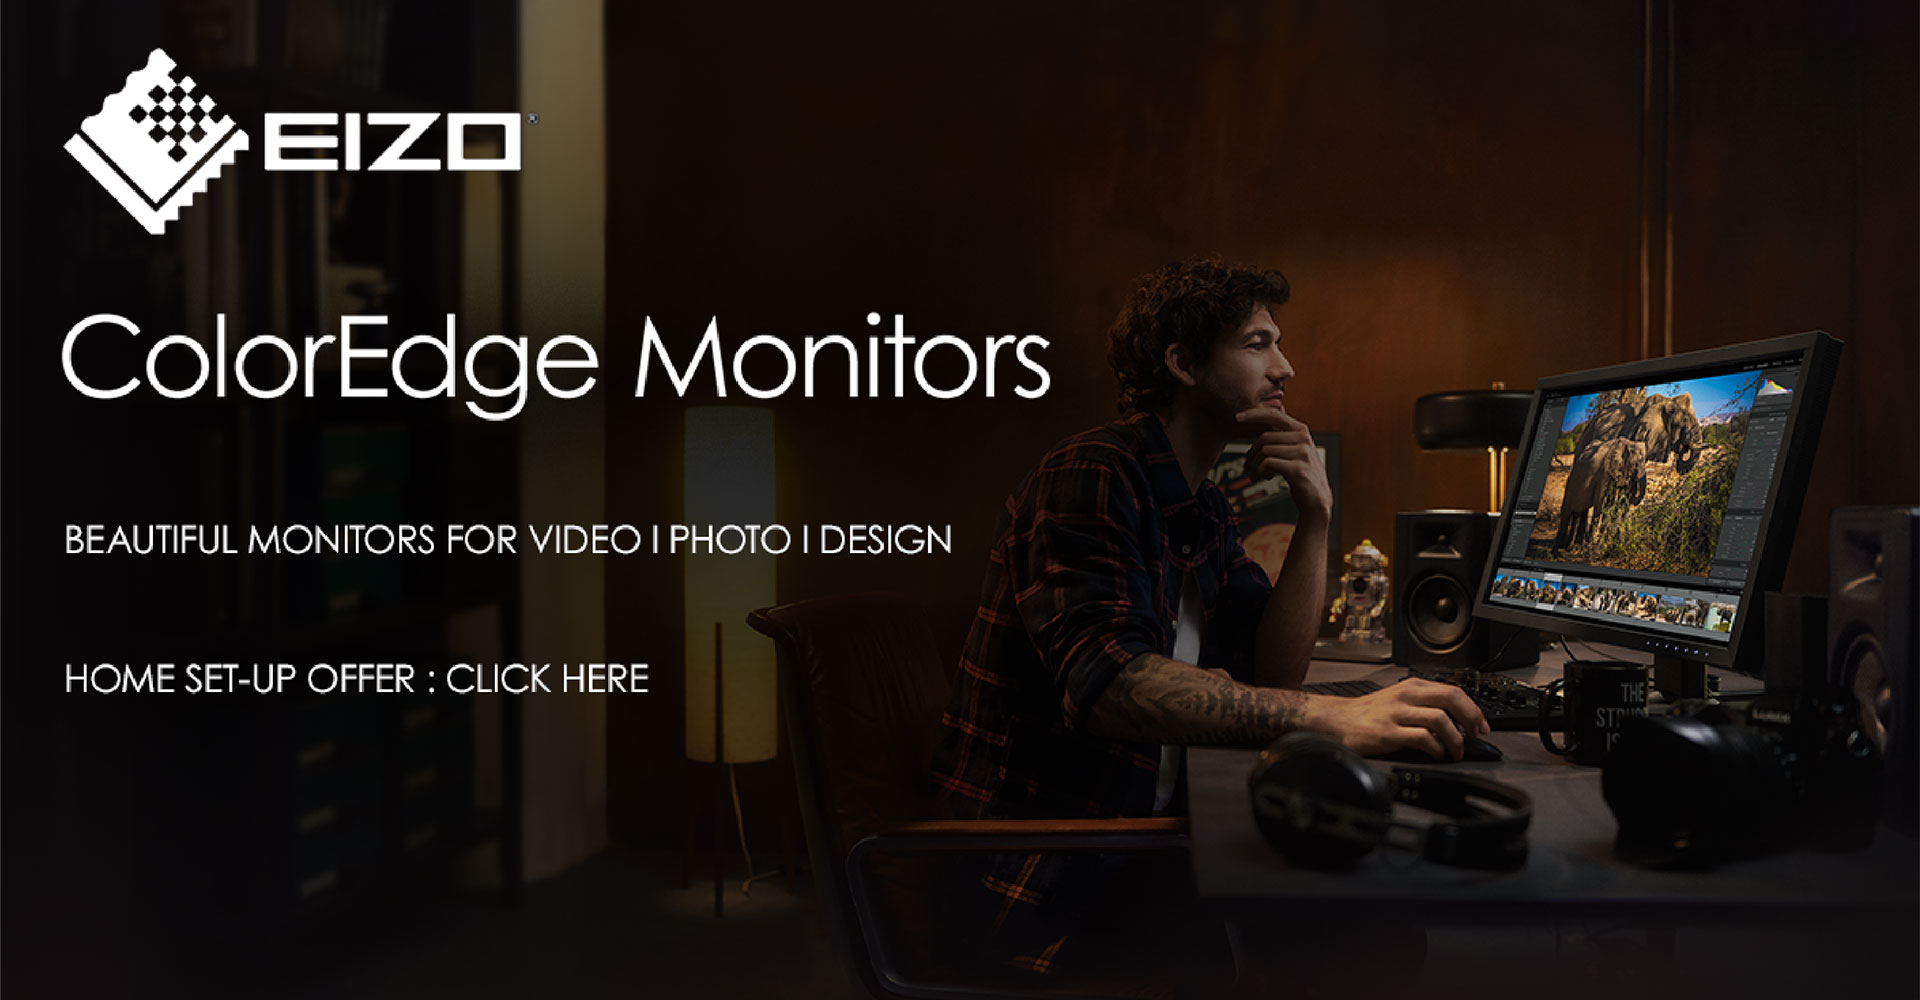 Eizo ColorEdge Monitors